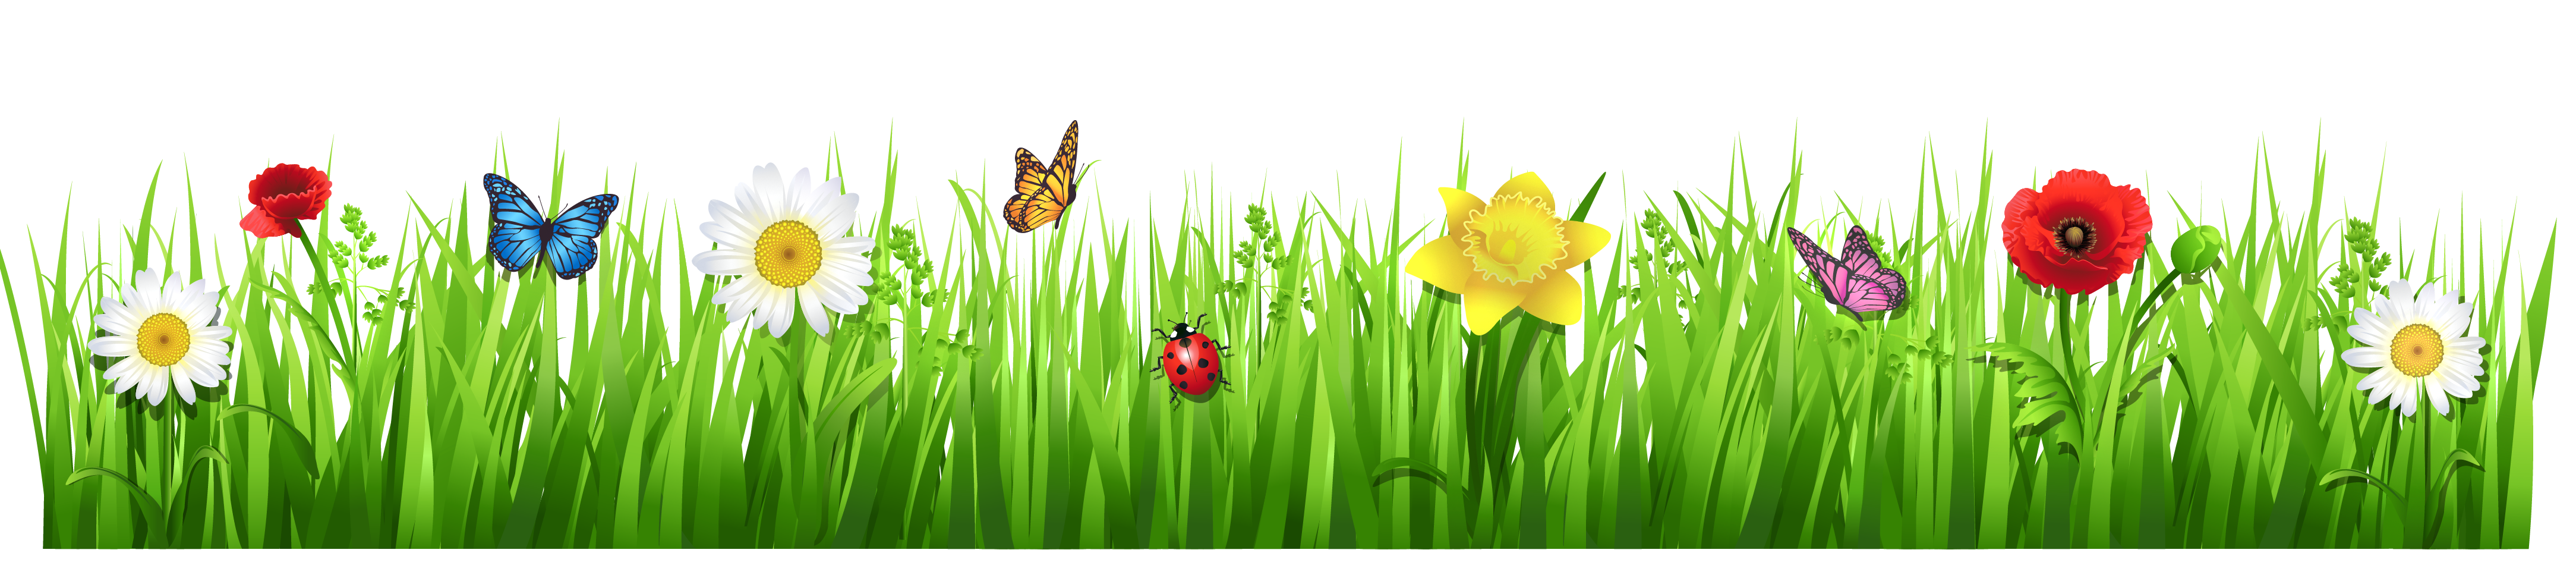 Daisy clipart plant insect. Daisies with grass png